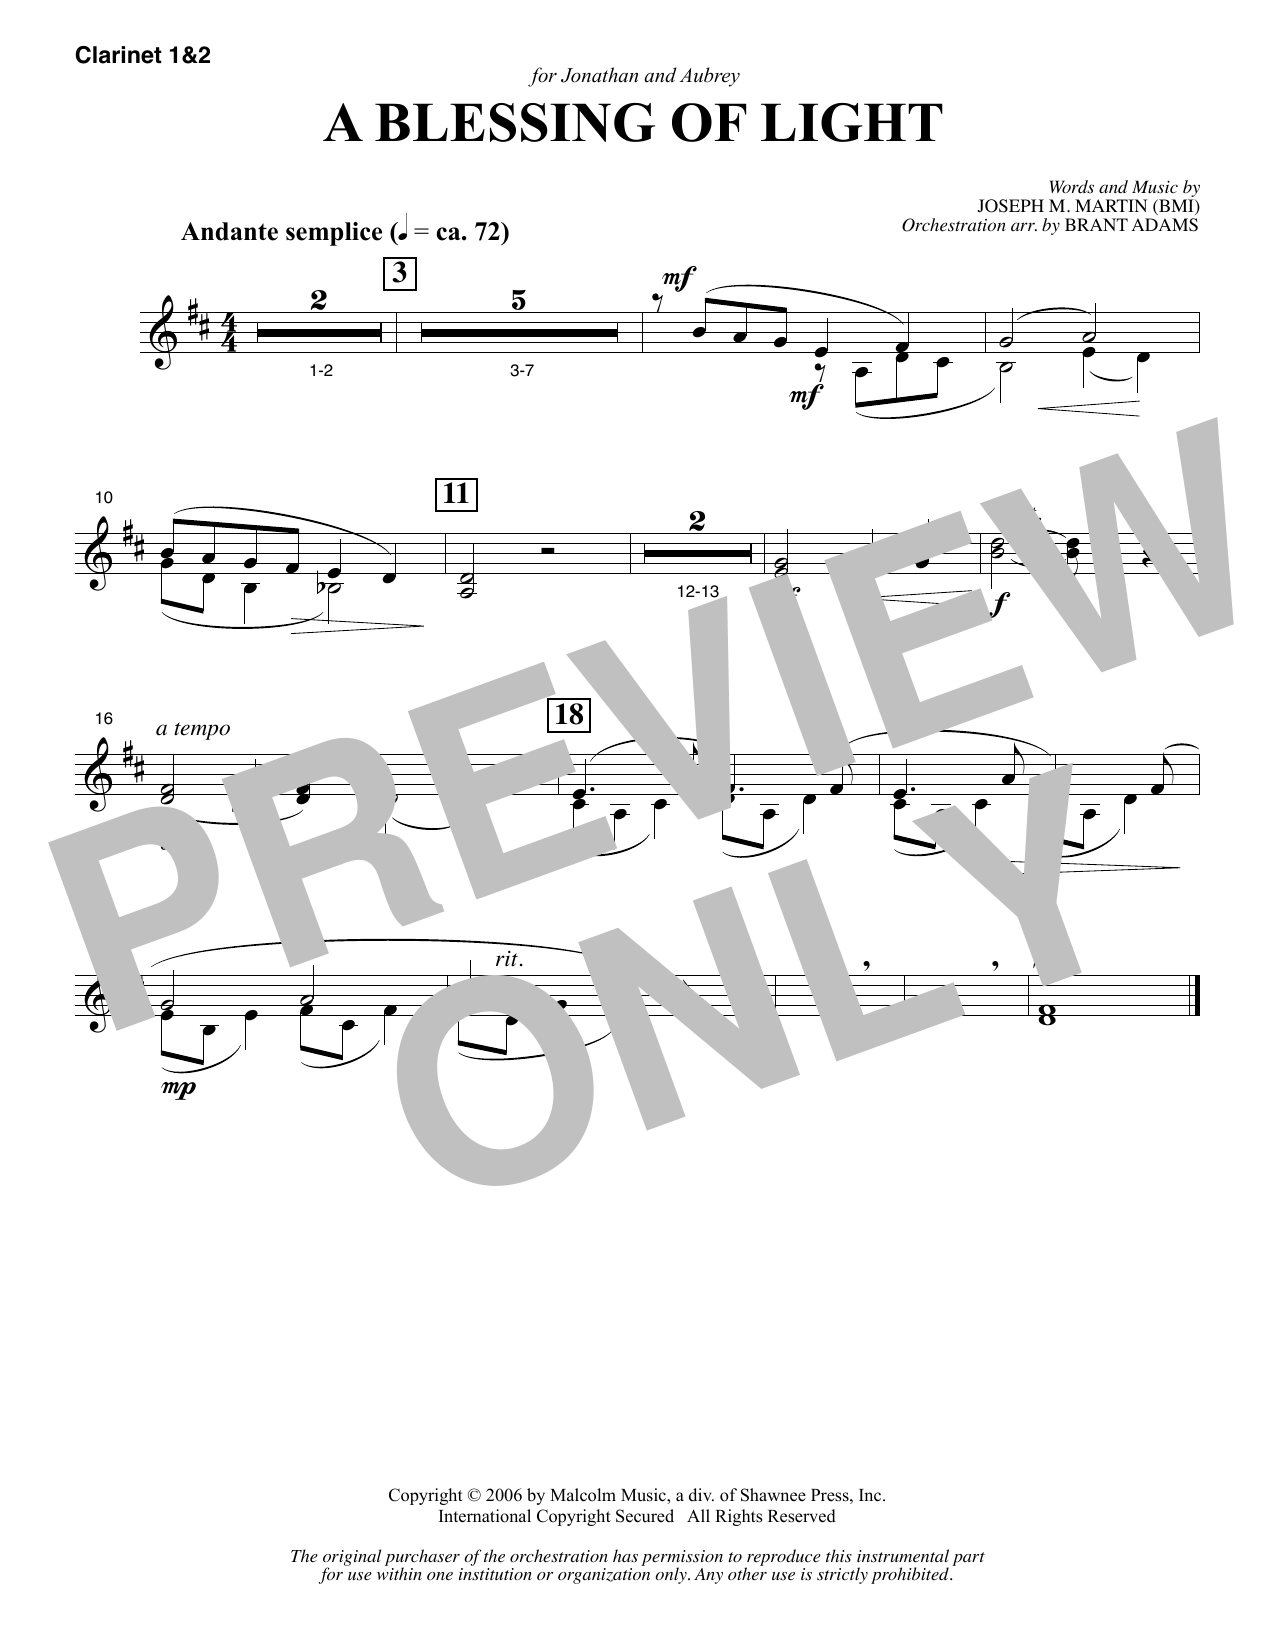 Joseph M. Martin A Blessing of Light - Bb Clarinet 1 & 2 sheet music notes and chords. Download Printable PDF.